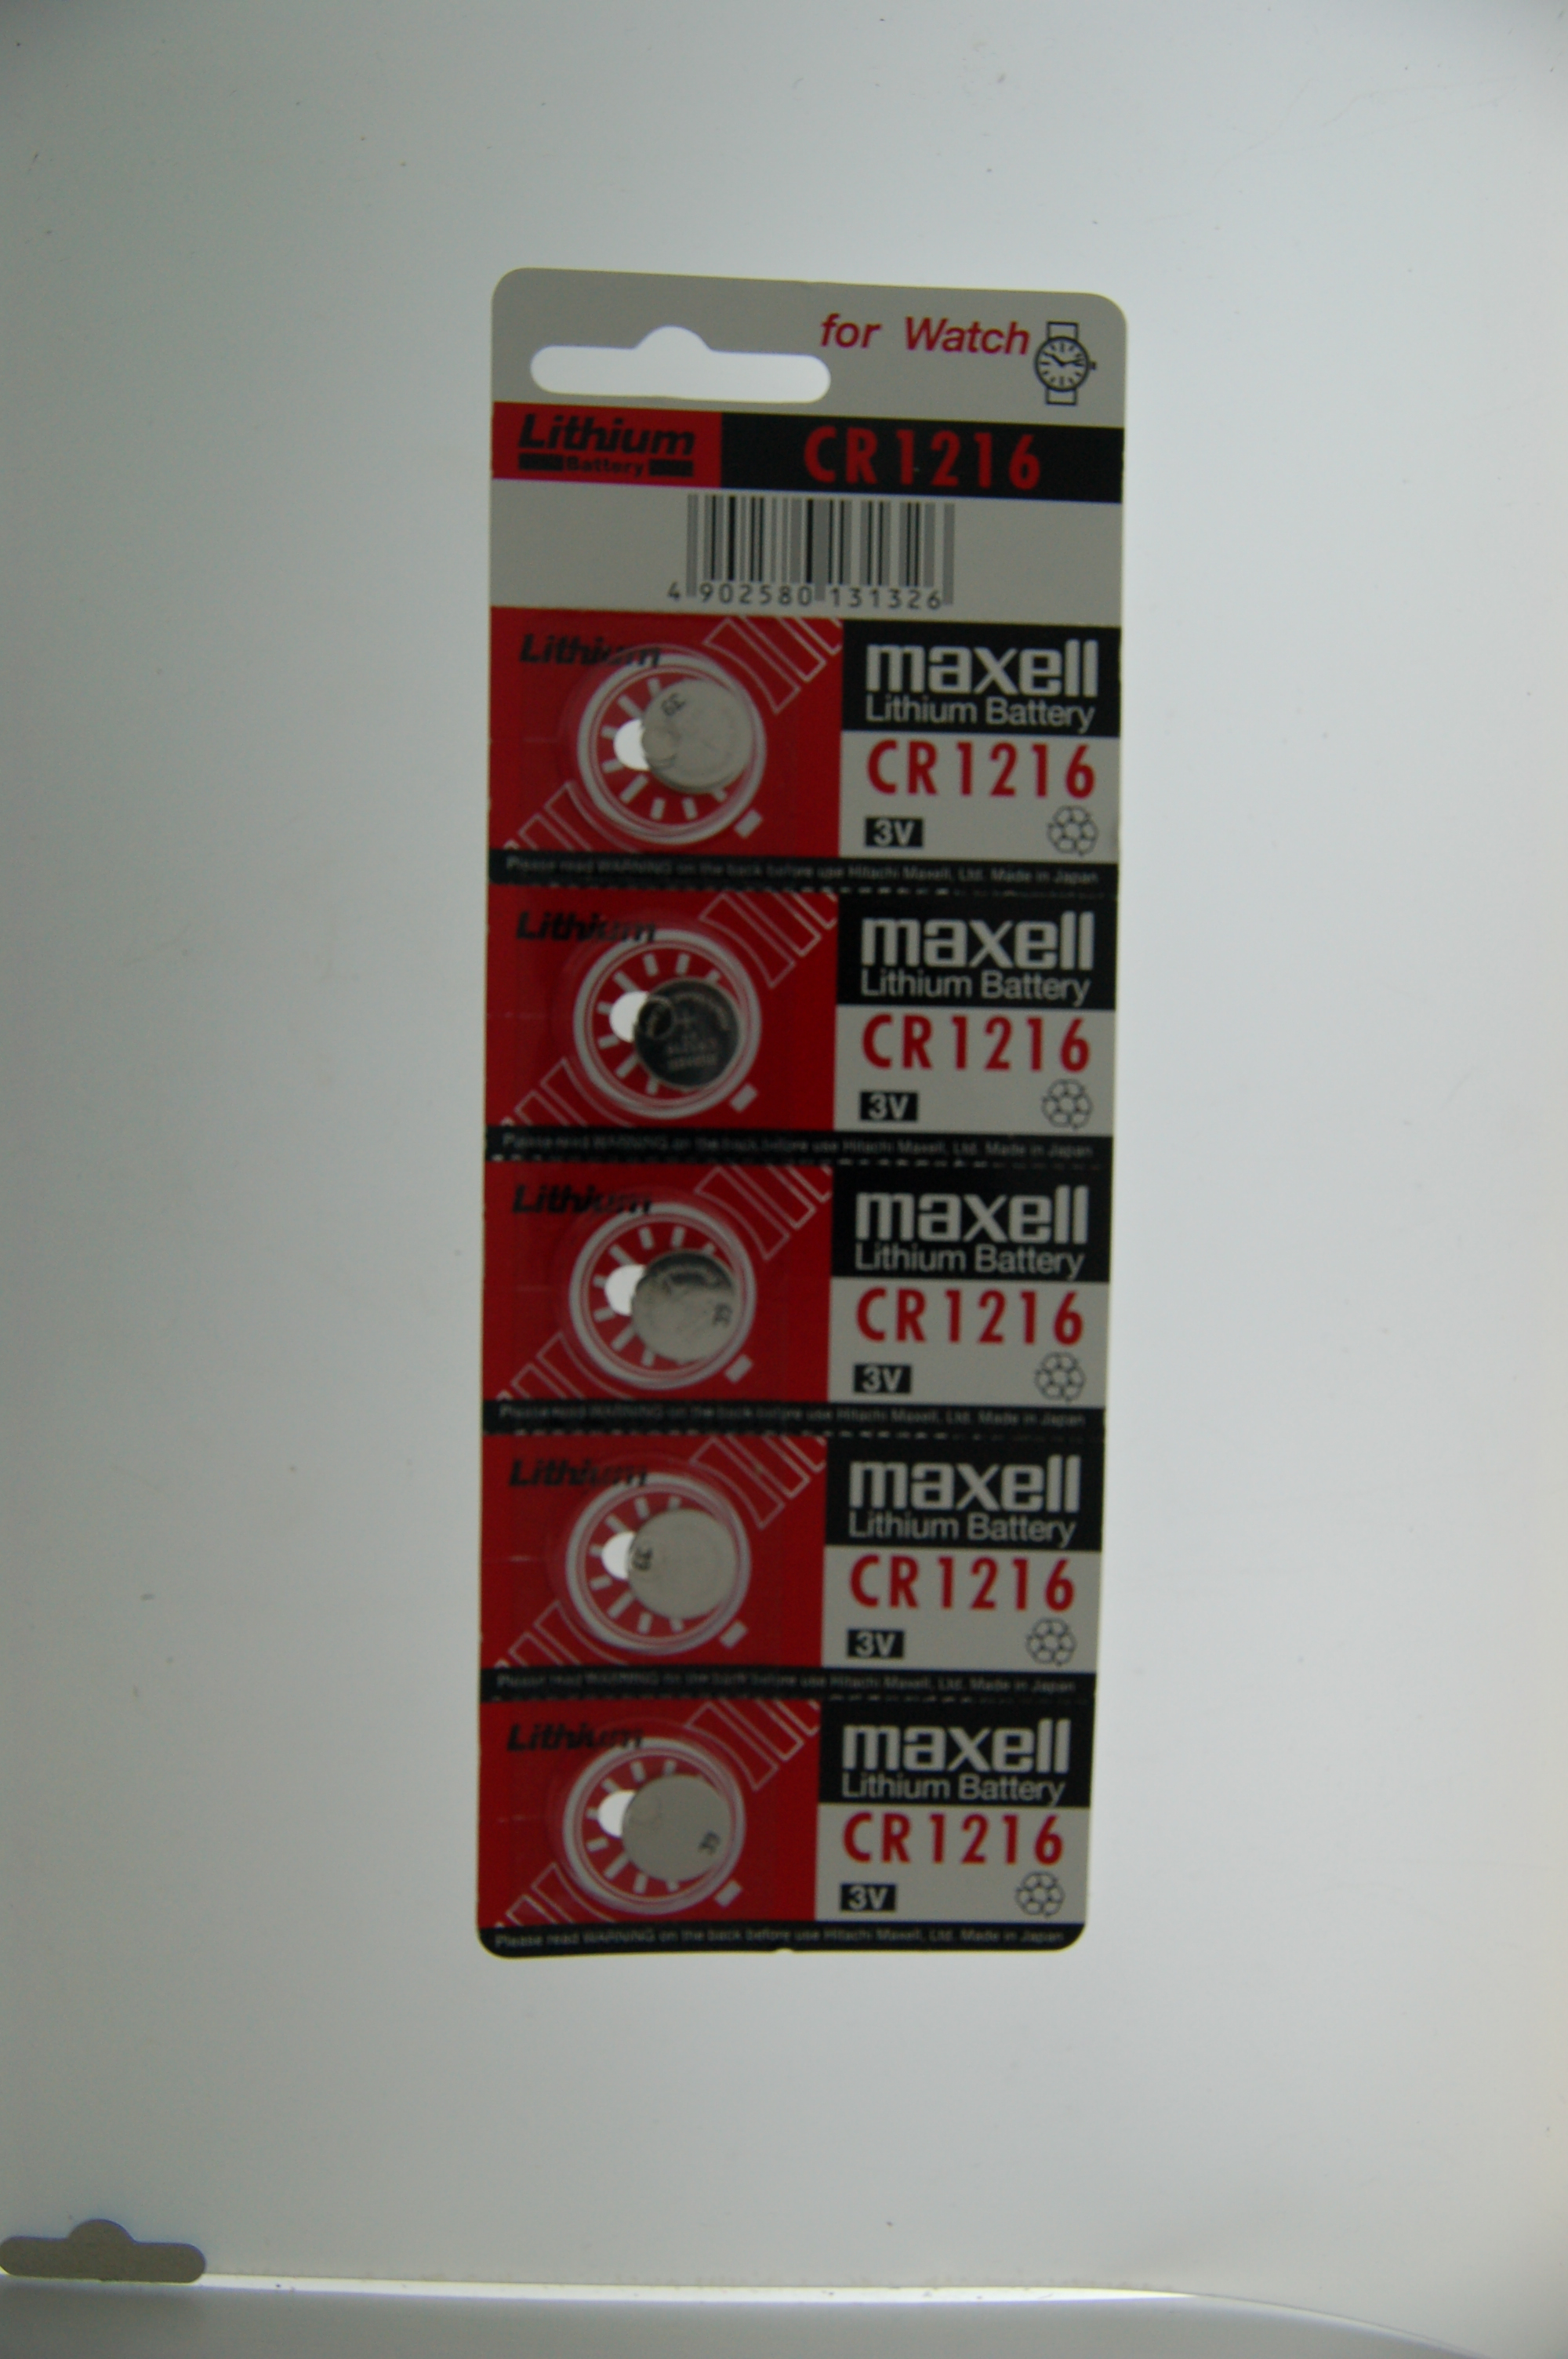 Maxell Lithium Battery CR1216